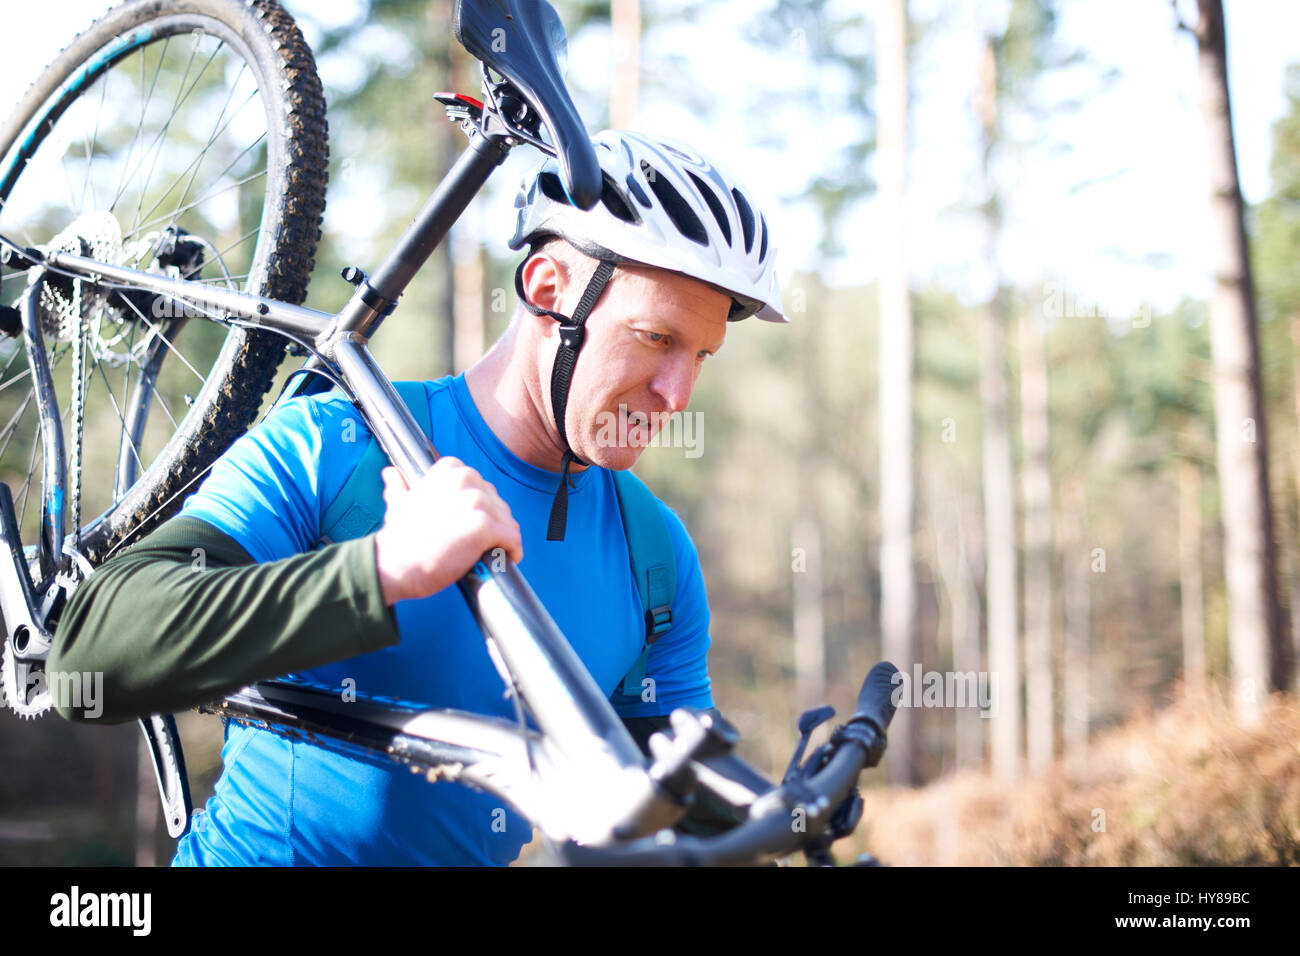 A man carries his mountain bike in the woods Stock Photo